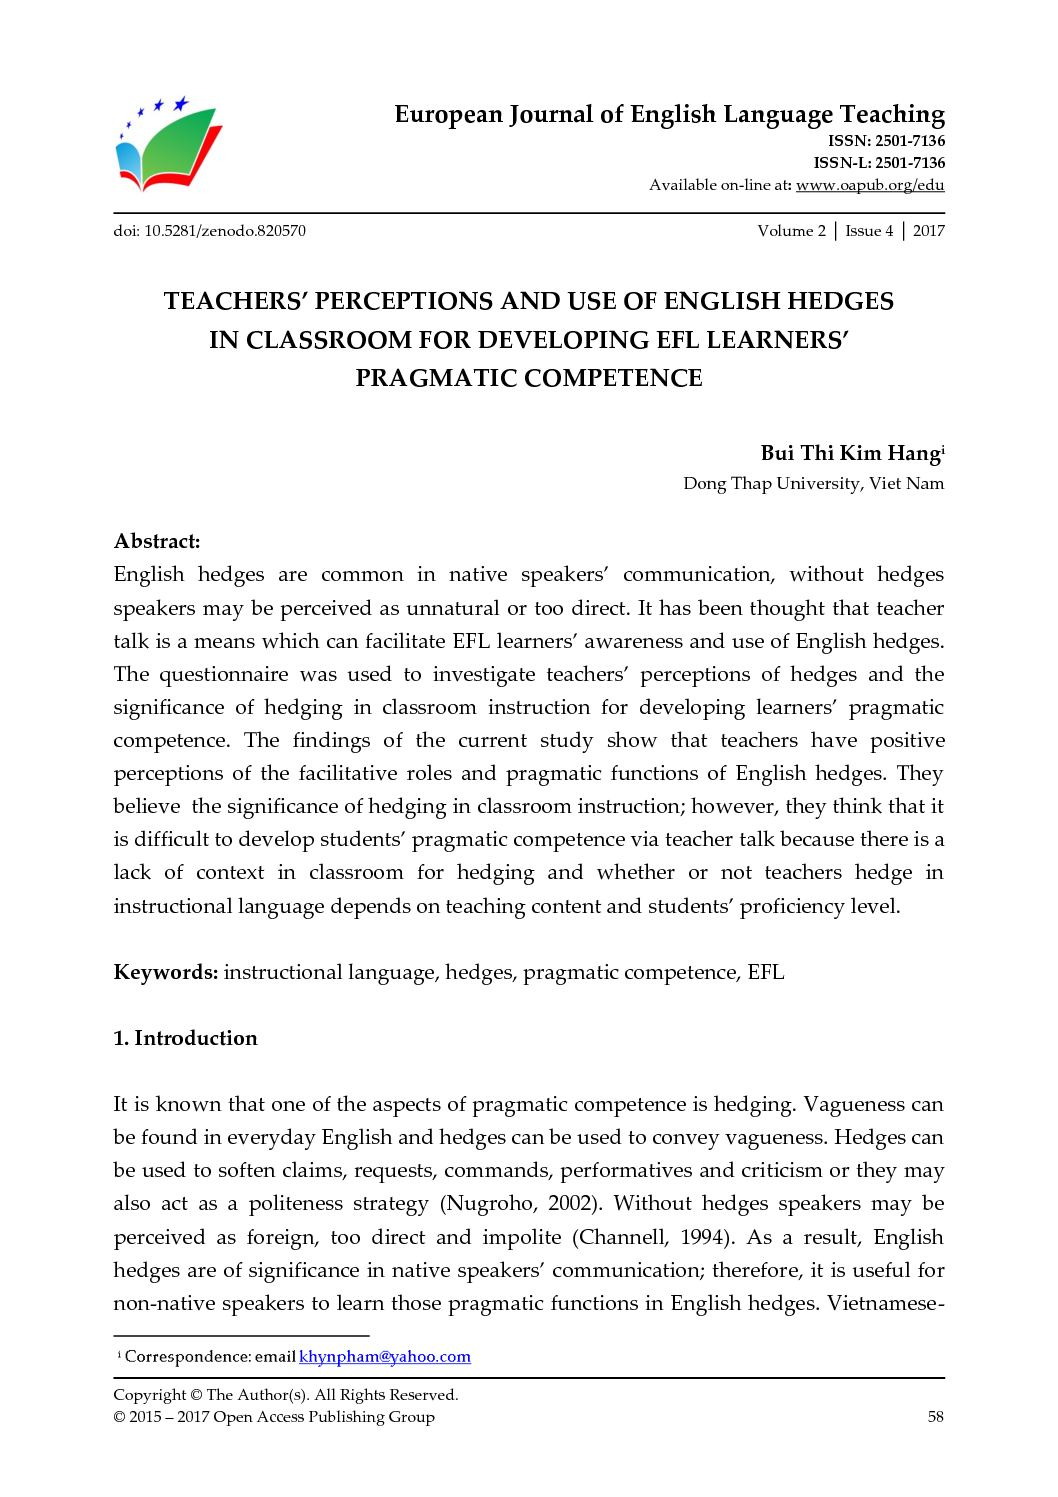 Calaméo - TEACHERS' PERCEPTIONS AND USE OF ENGLISH HEDGES IN